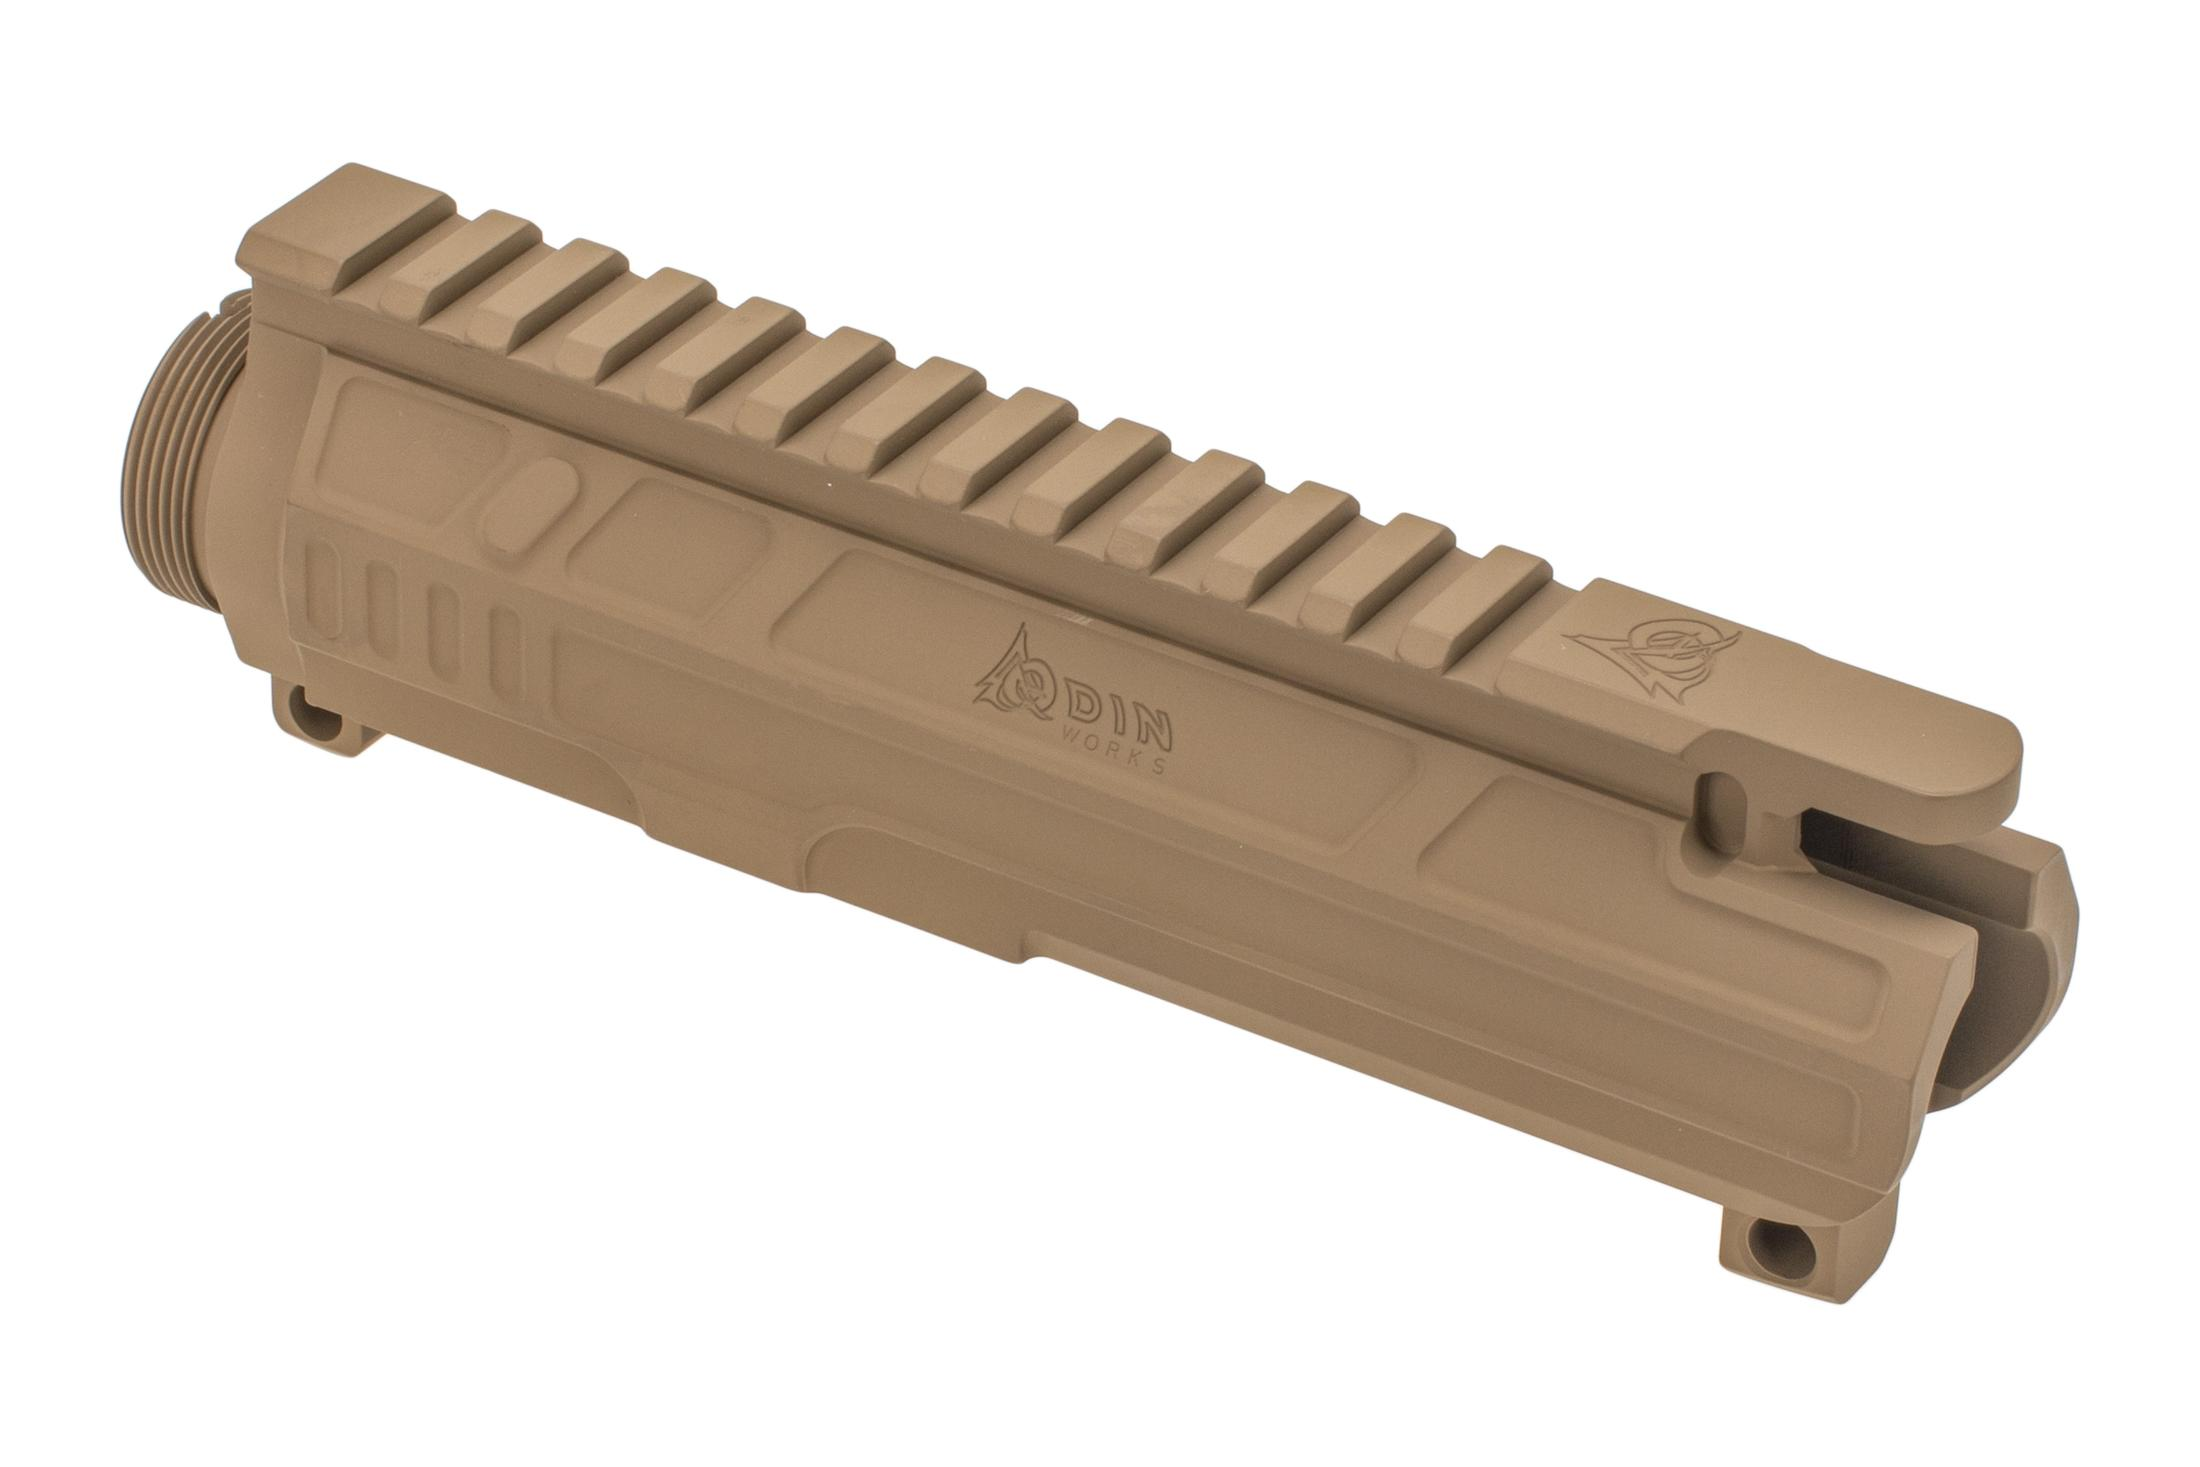 Odin Works AR15 stripped upper receiver features a milled lightweight design